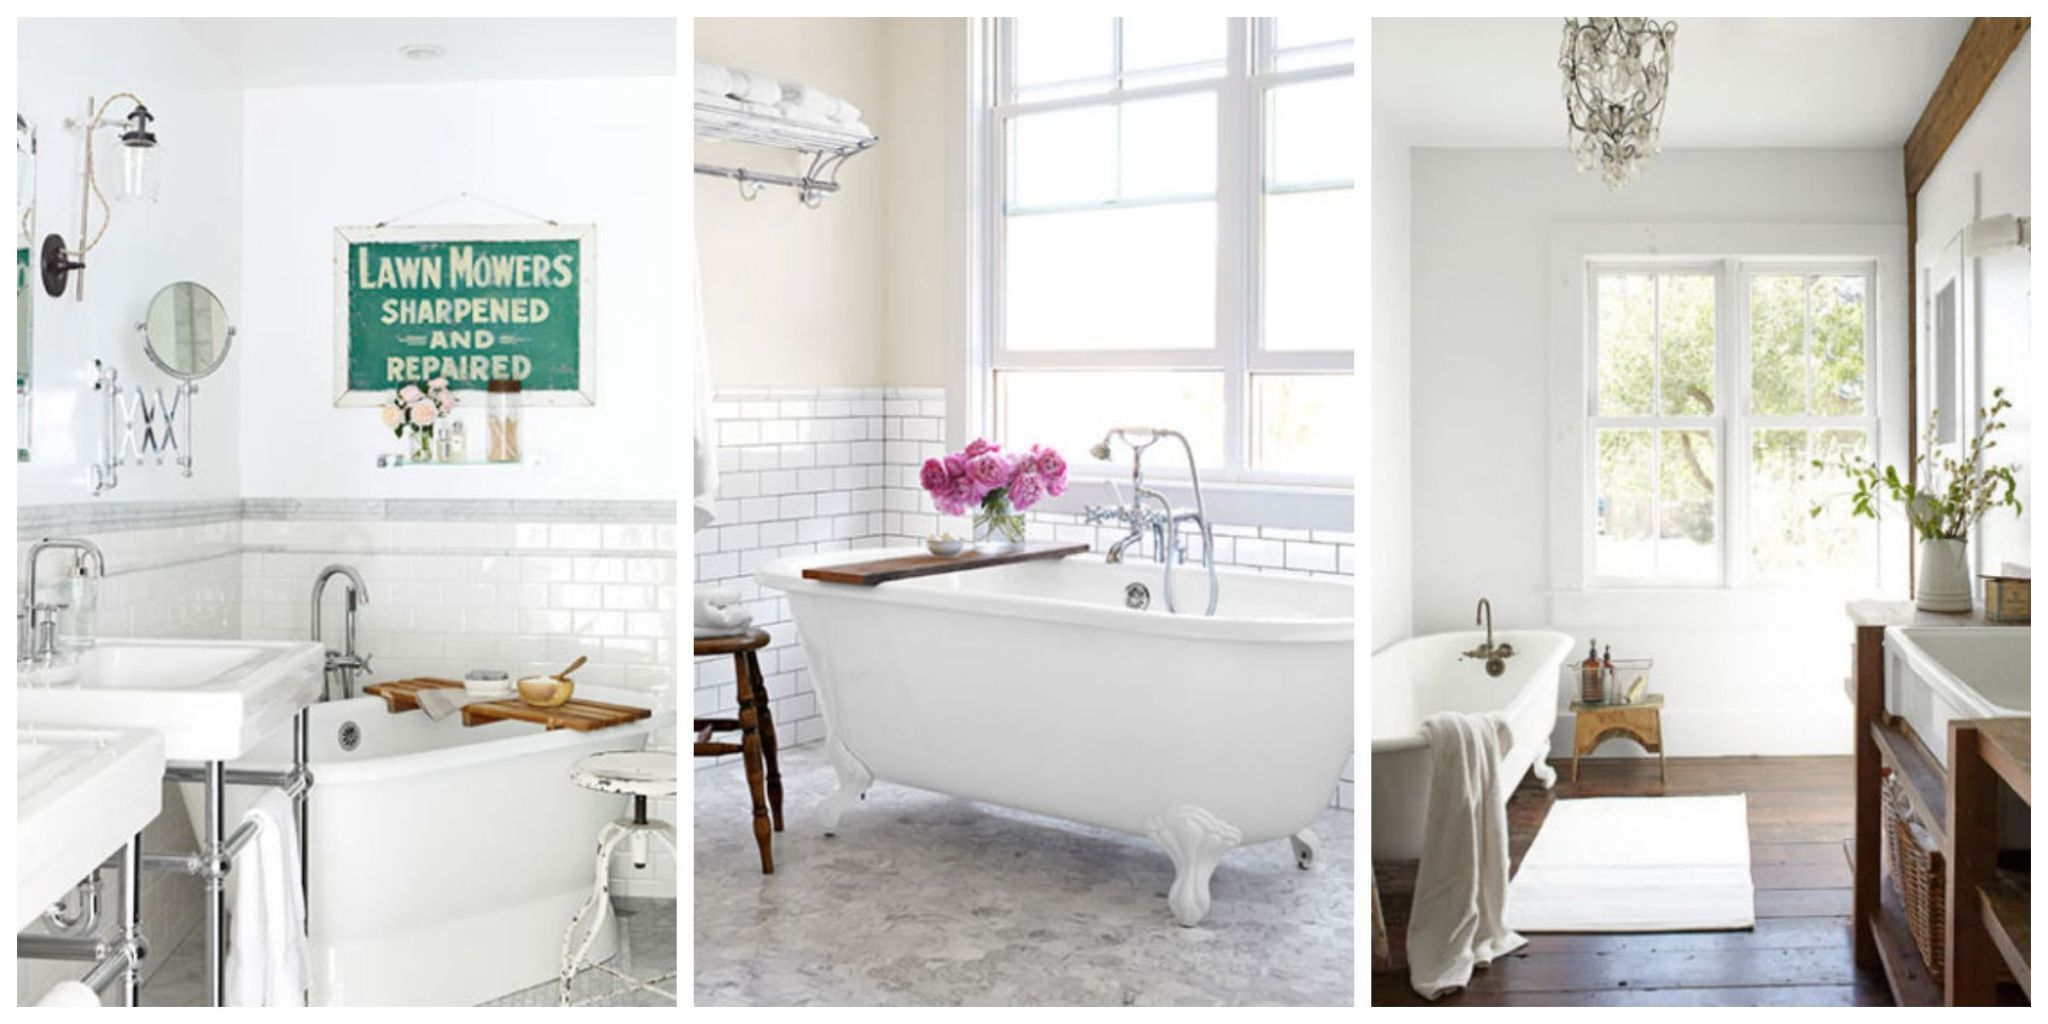 Transform your bathroom or powder room into a clean relaxing and bright space with these decorating tips. Plus get more bathroom ideas! & 30 White Bathroom Ideas - Decorating with White for Bathrooms